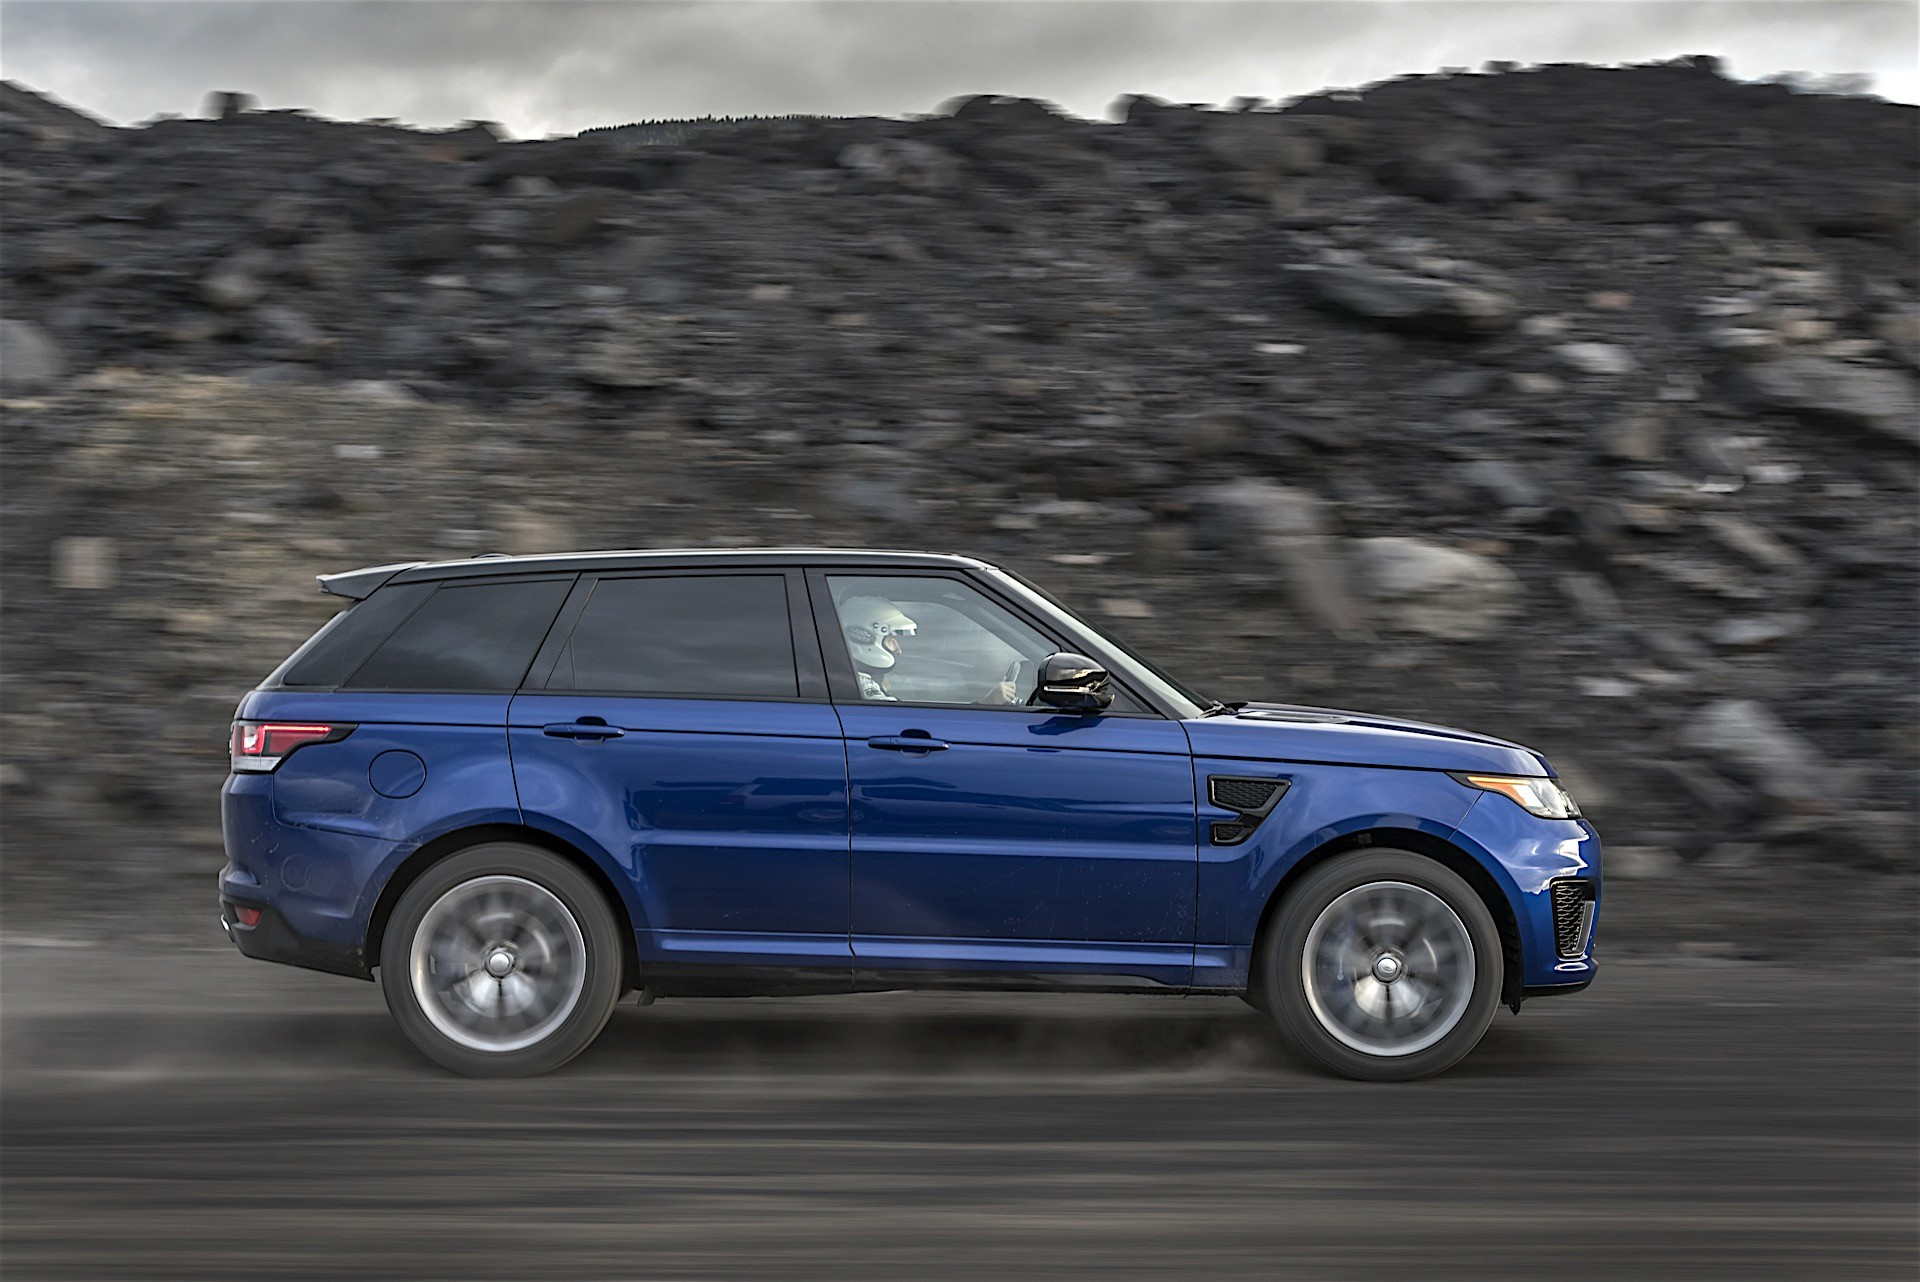 range rover sport svr official test reveals acceleration times on all surfaces autoevolution. Black Bedroom Furniture Sets. Home Design Ideas